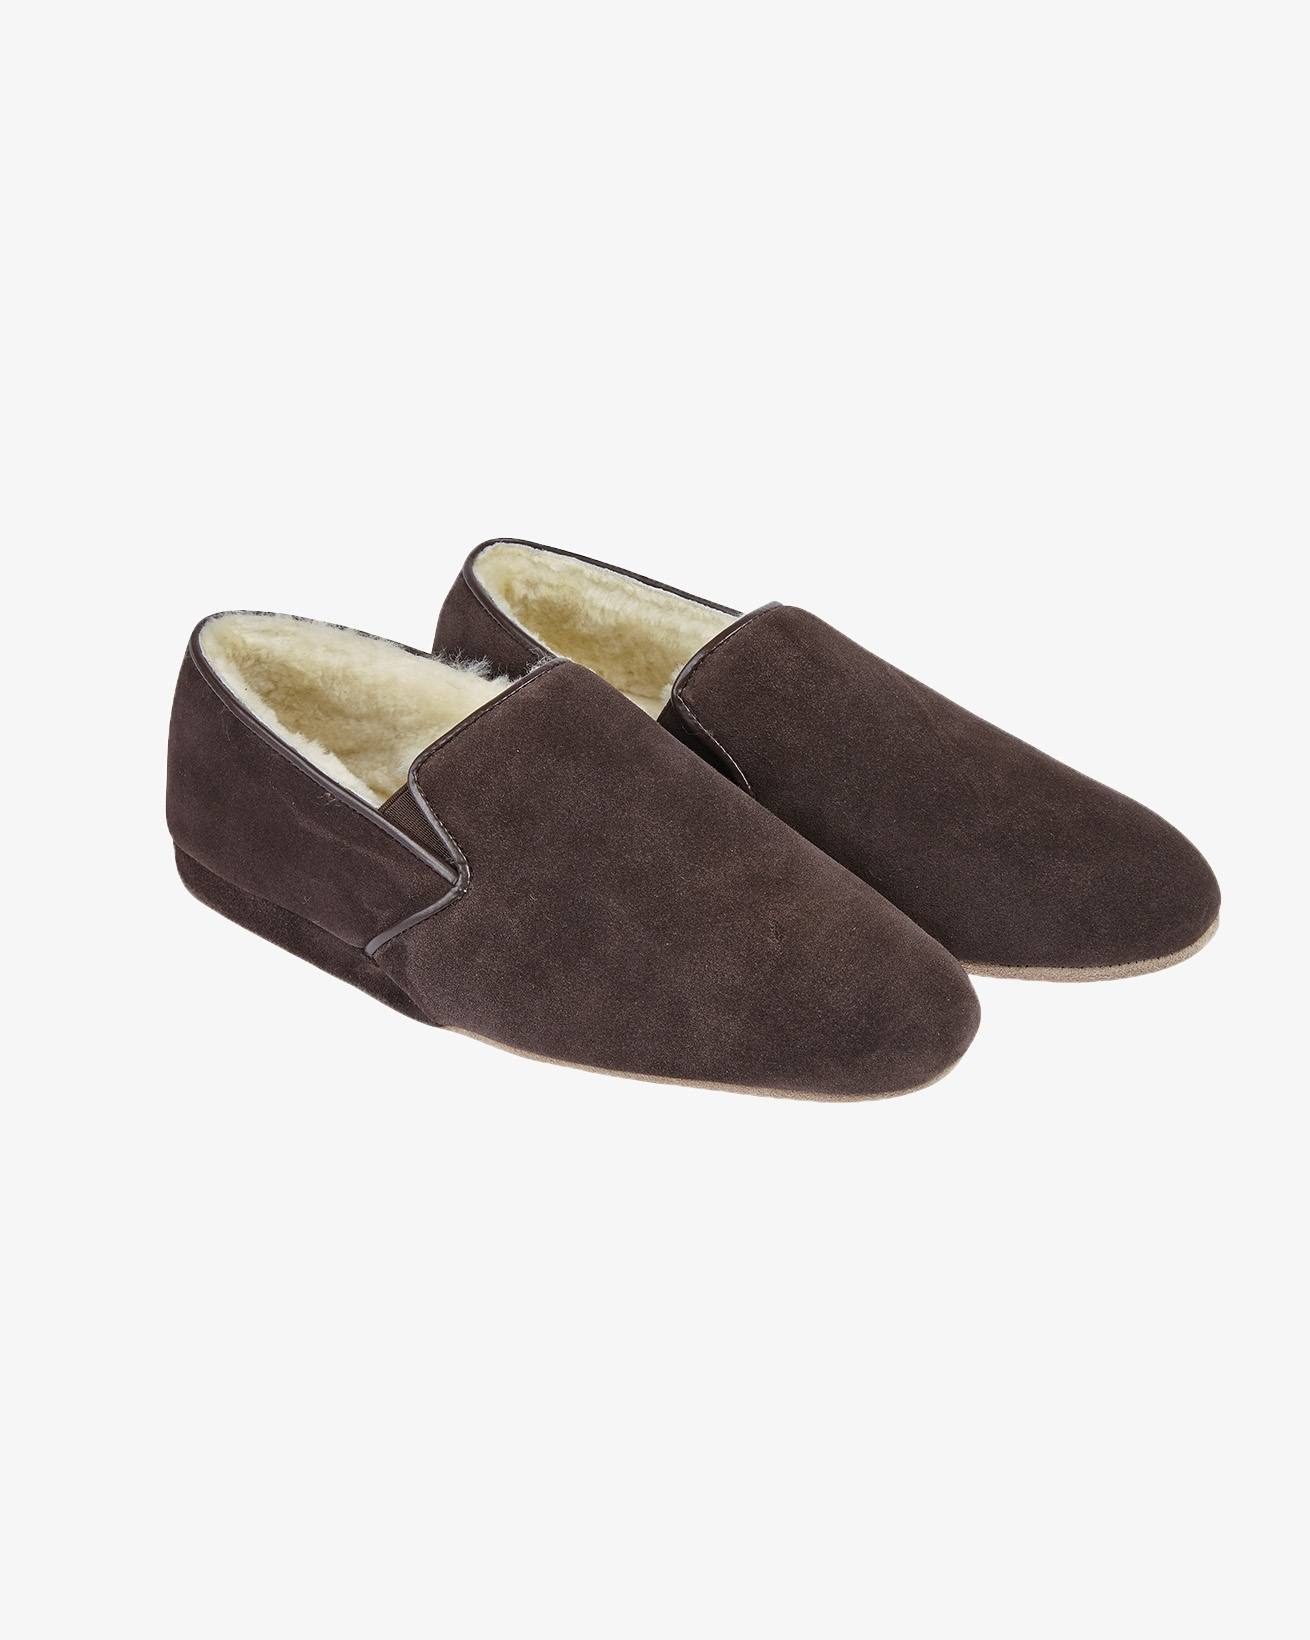 Ladies Cromarty Slipper - Size 7 - Brown